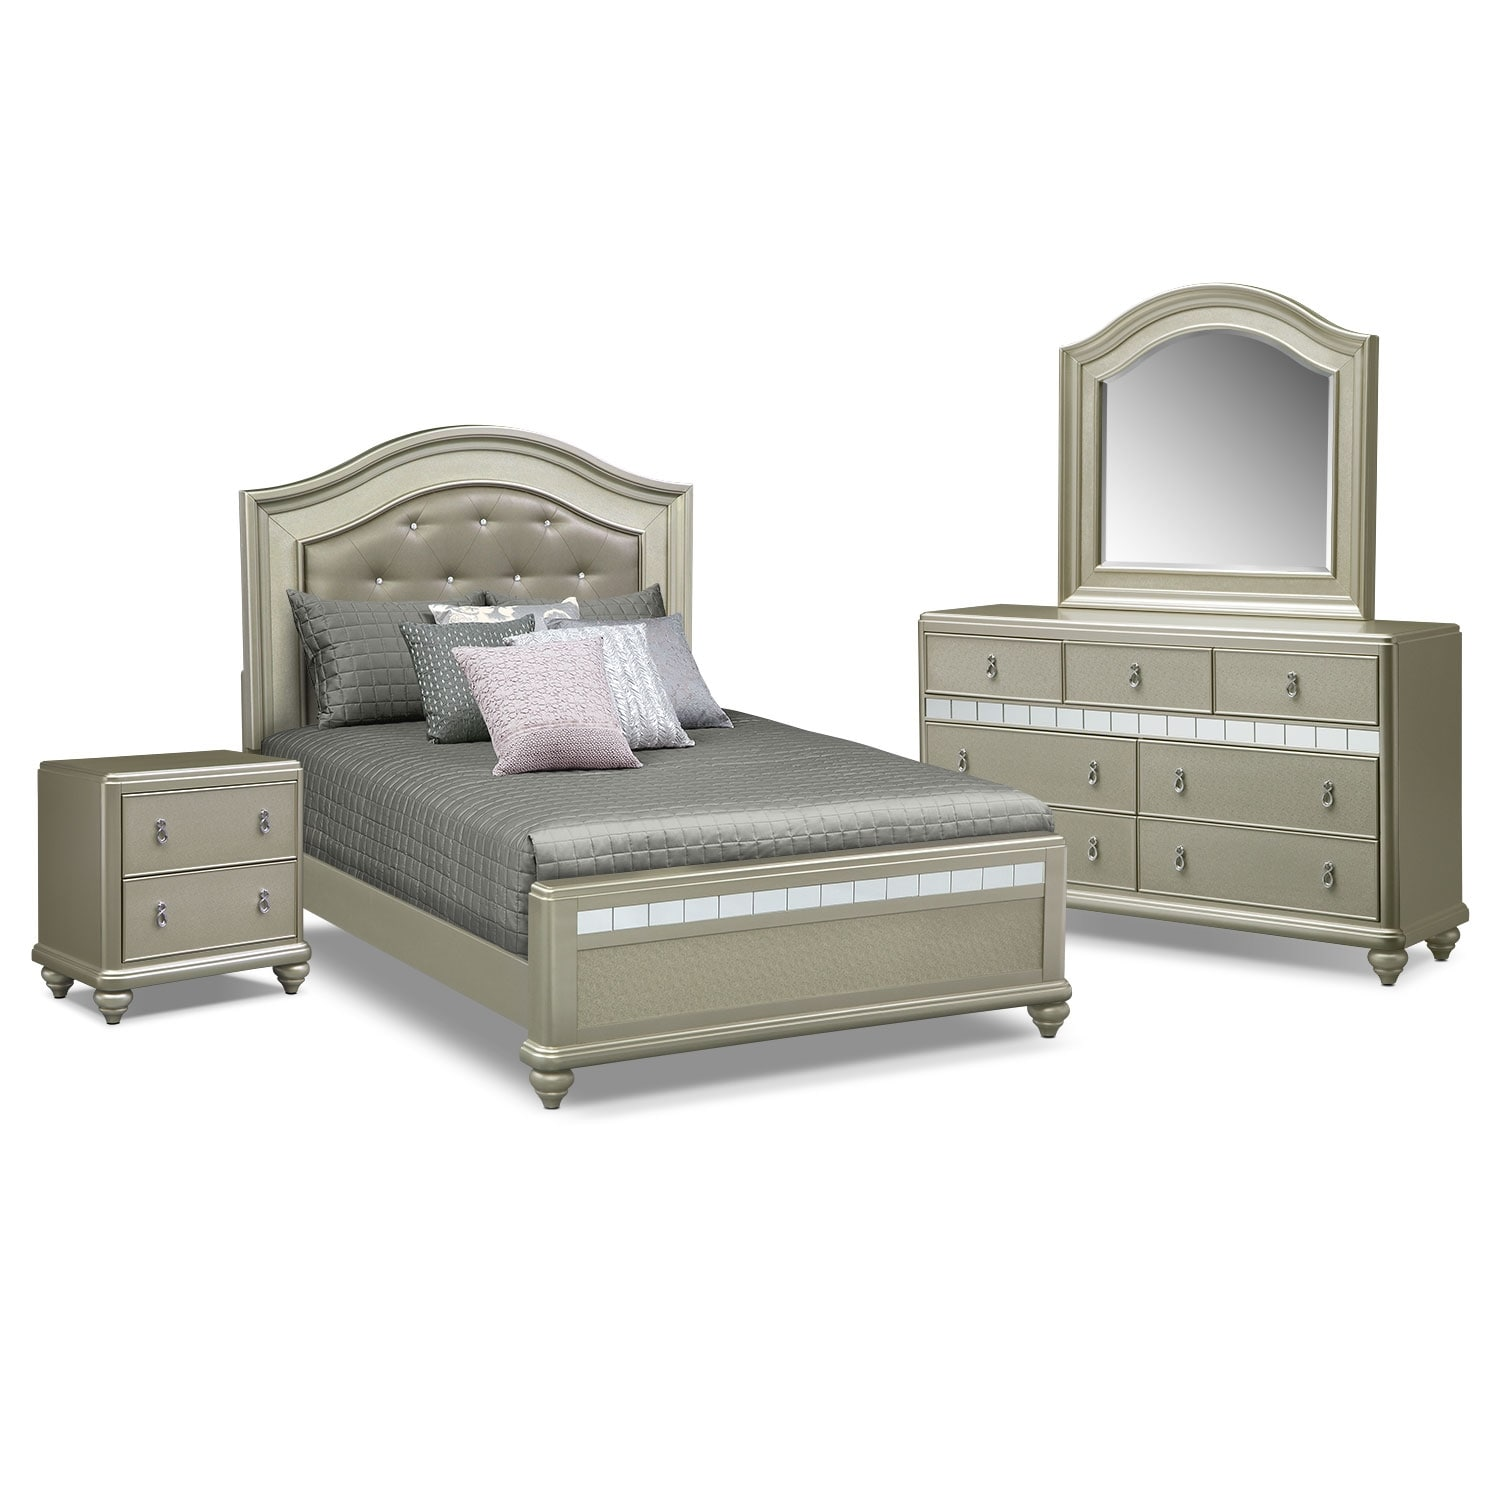 Bedroom Furniture Outlet Stores: Factory Outlet Home Furniture